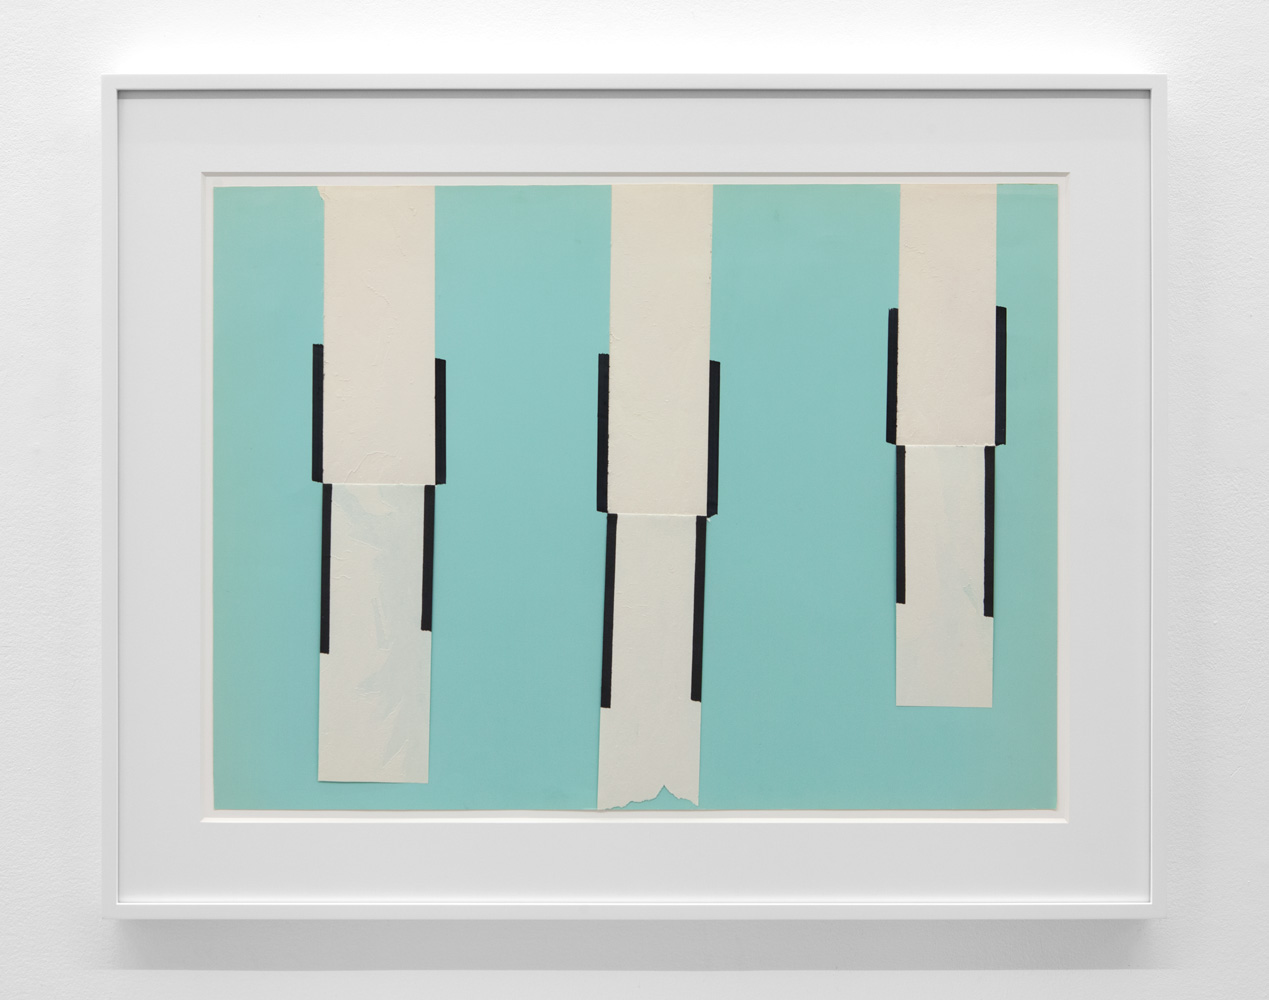 Dependent Space 275 , 1975 Magic marker on paper 20 3/4 x 28 inches  52.7 x 71.1 cm